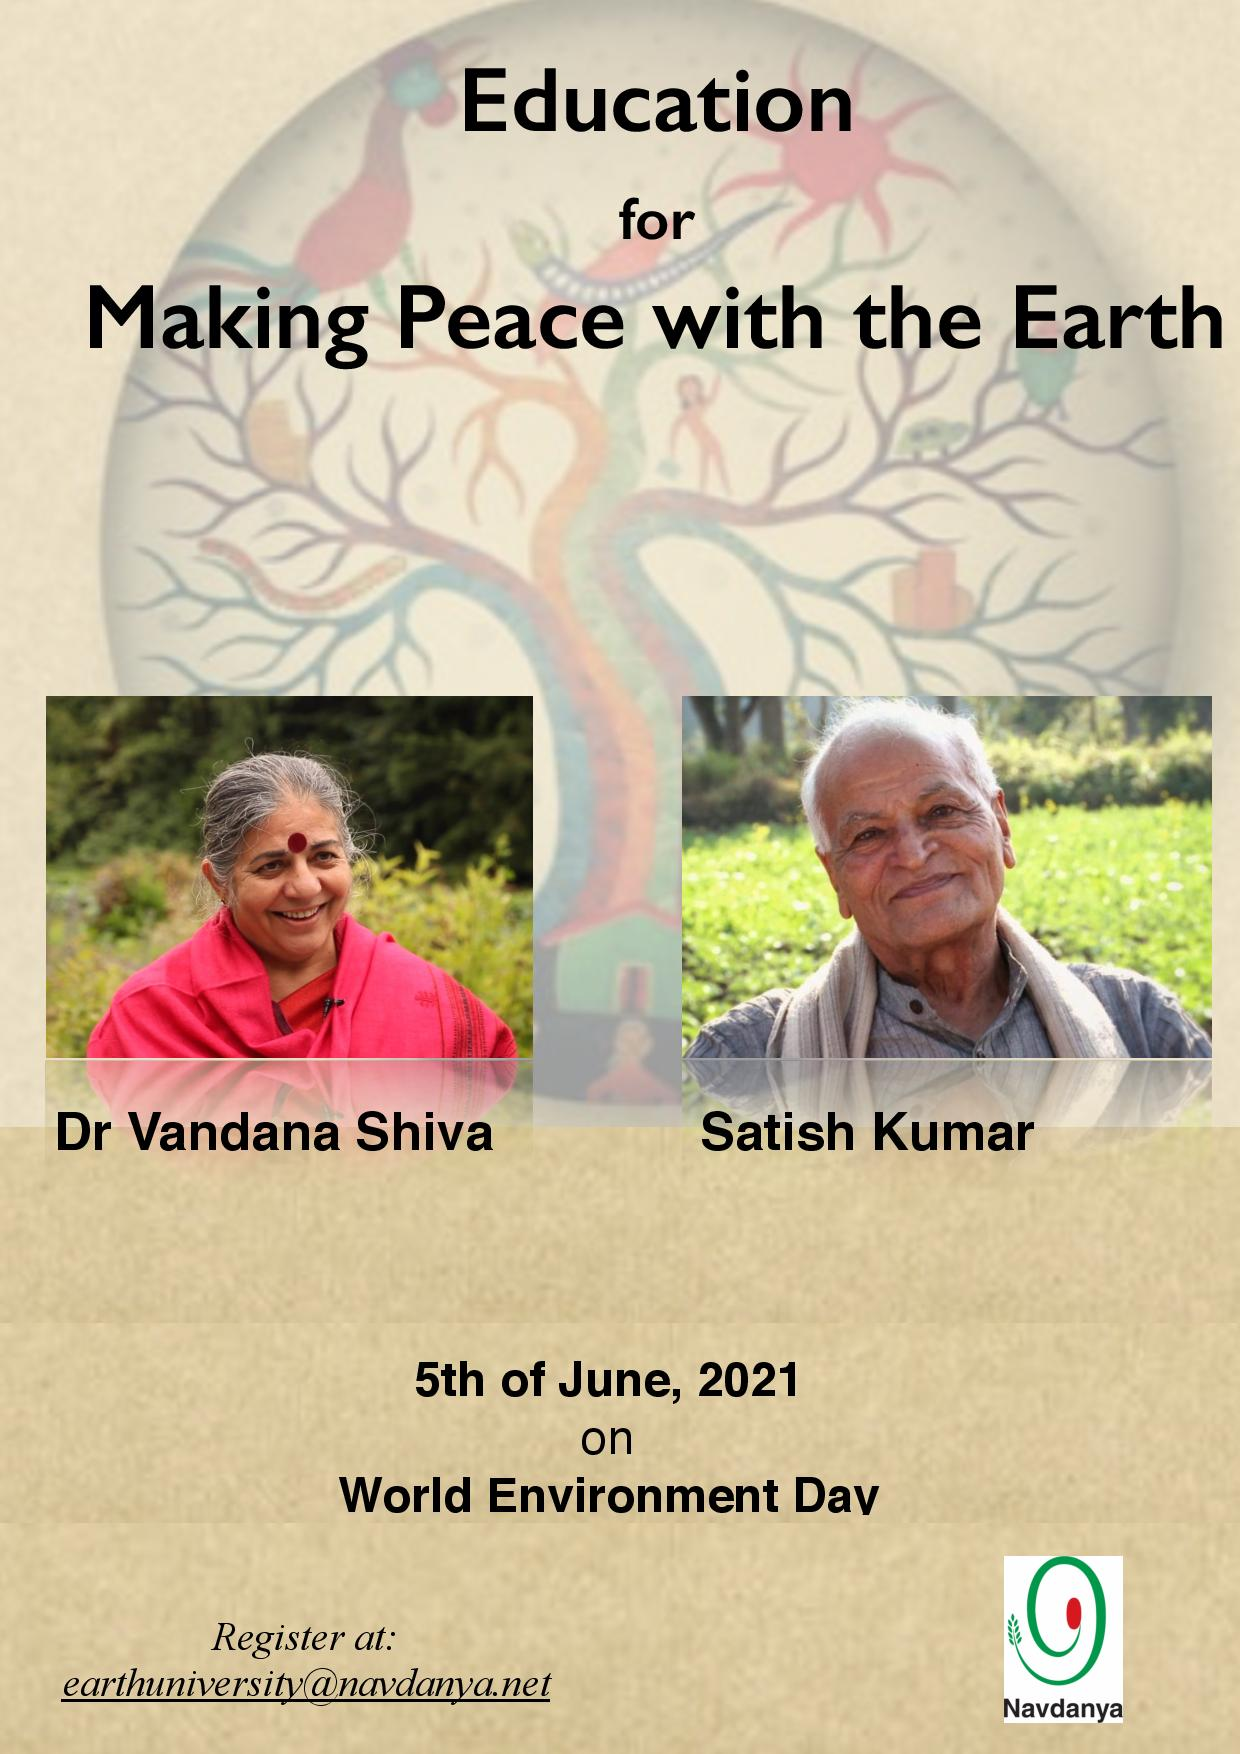 Education for Making Peace with the Earth